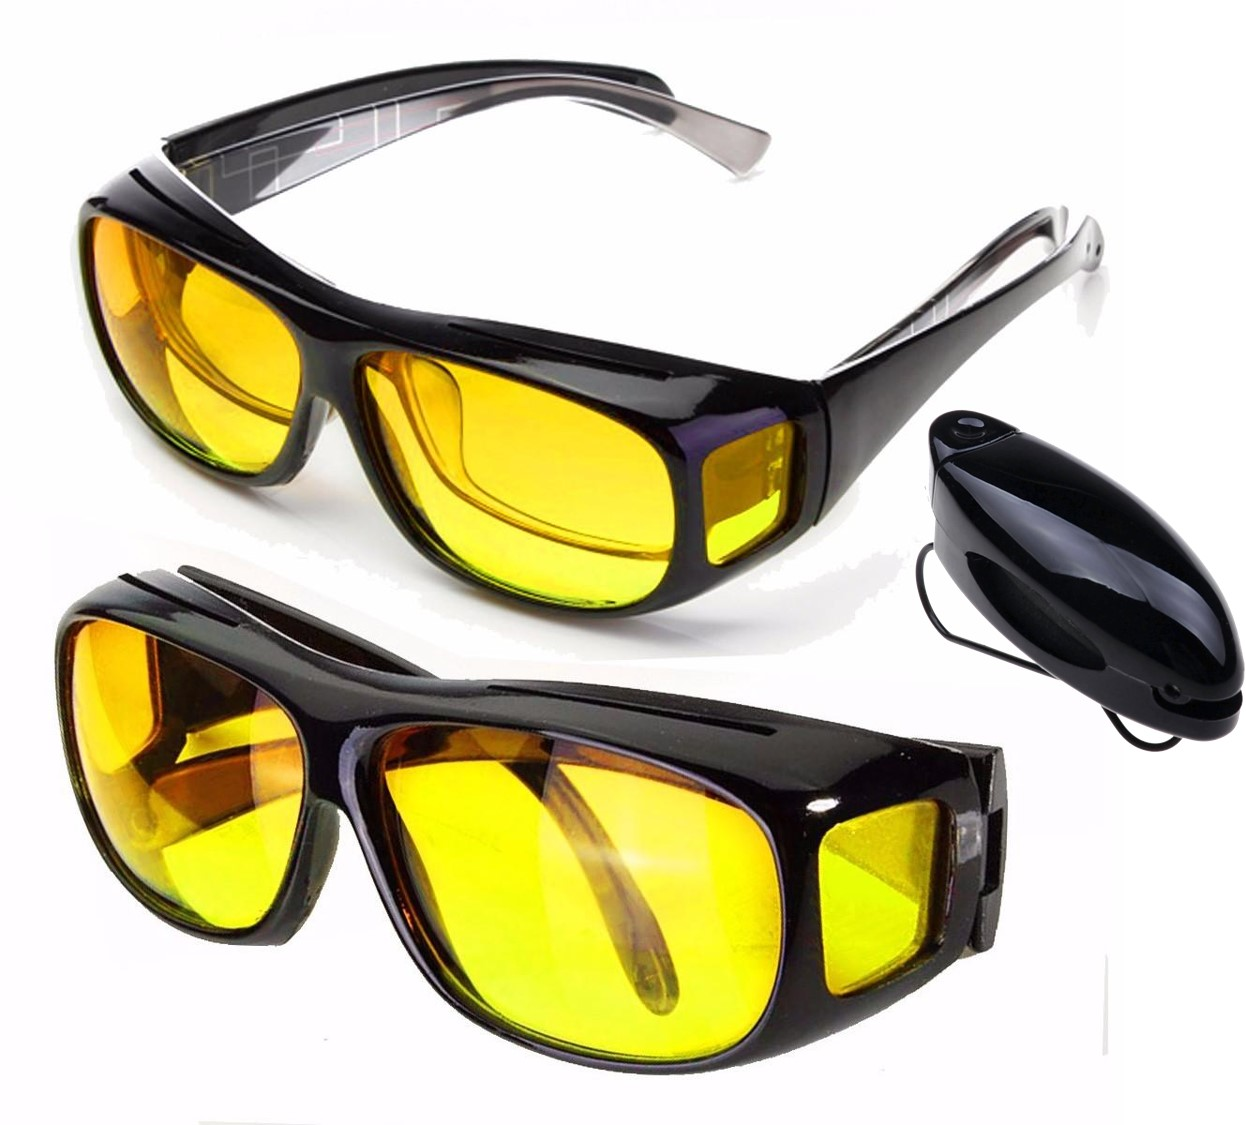 Lynx ™ Glare Protection Glasses With UV Car Drive Anti ...